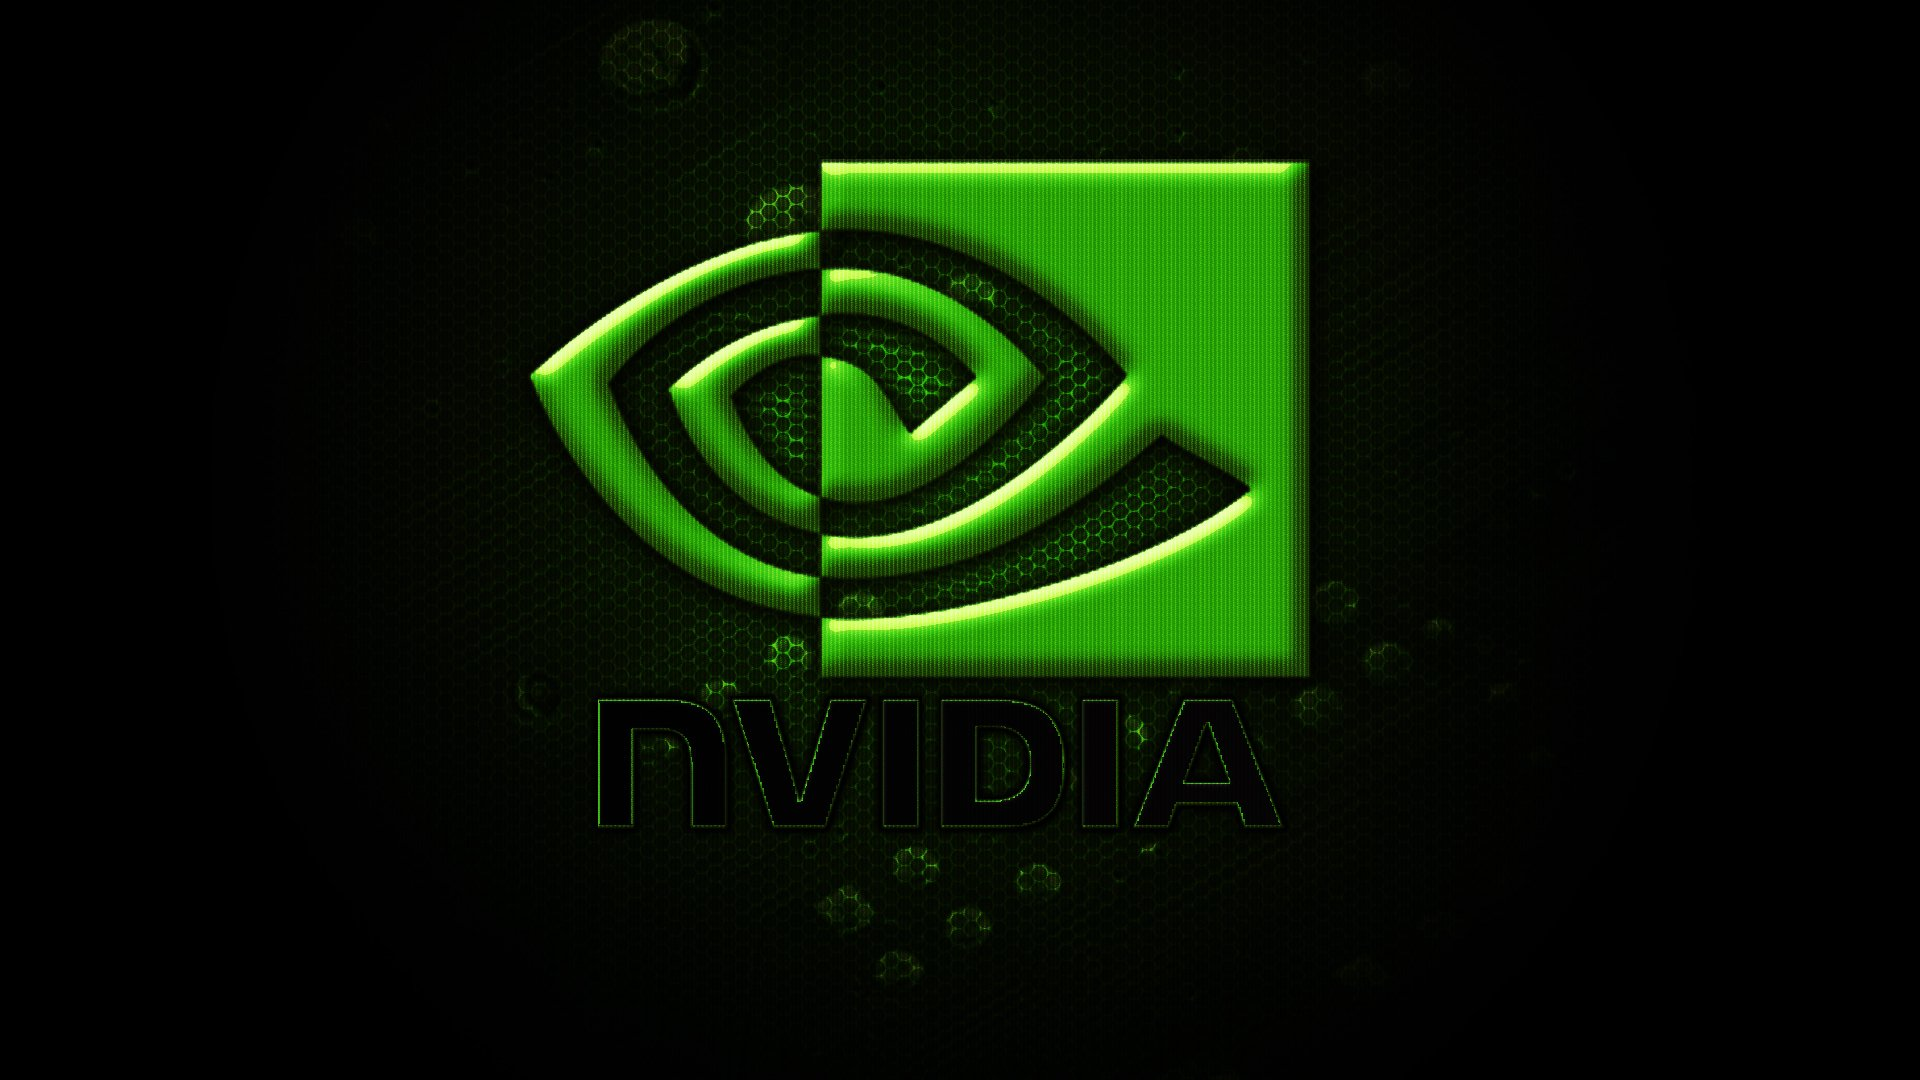 Nvidias family includes primarily graphics wireless communication PC processors and automotive hardwaresoftware Some families are listed below